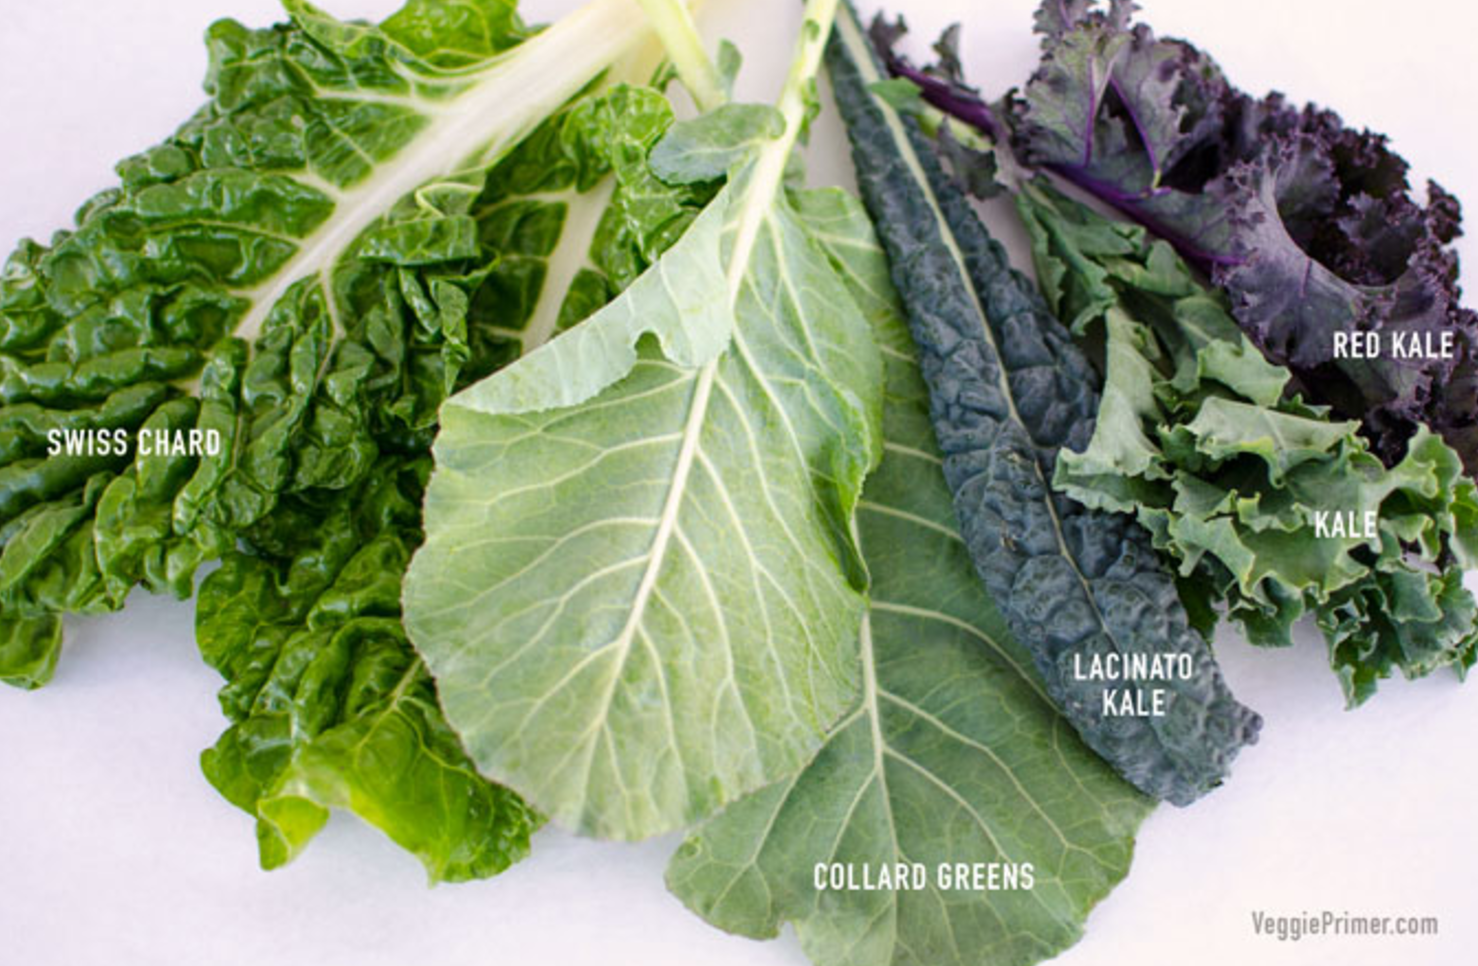 Read more about your options for eating dark leafy greens,  click here